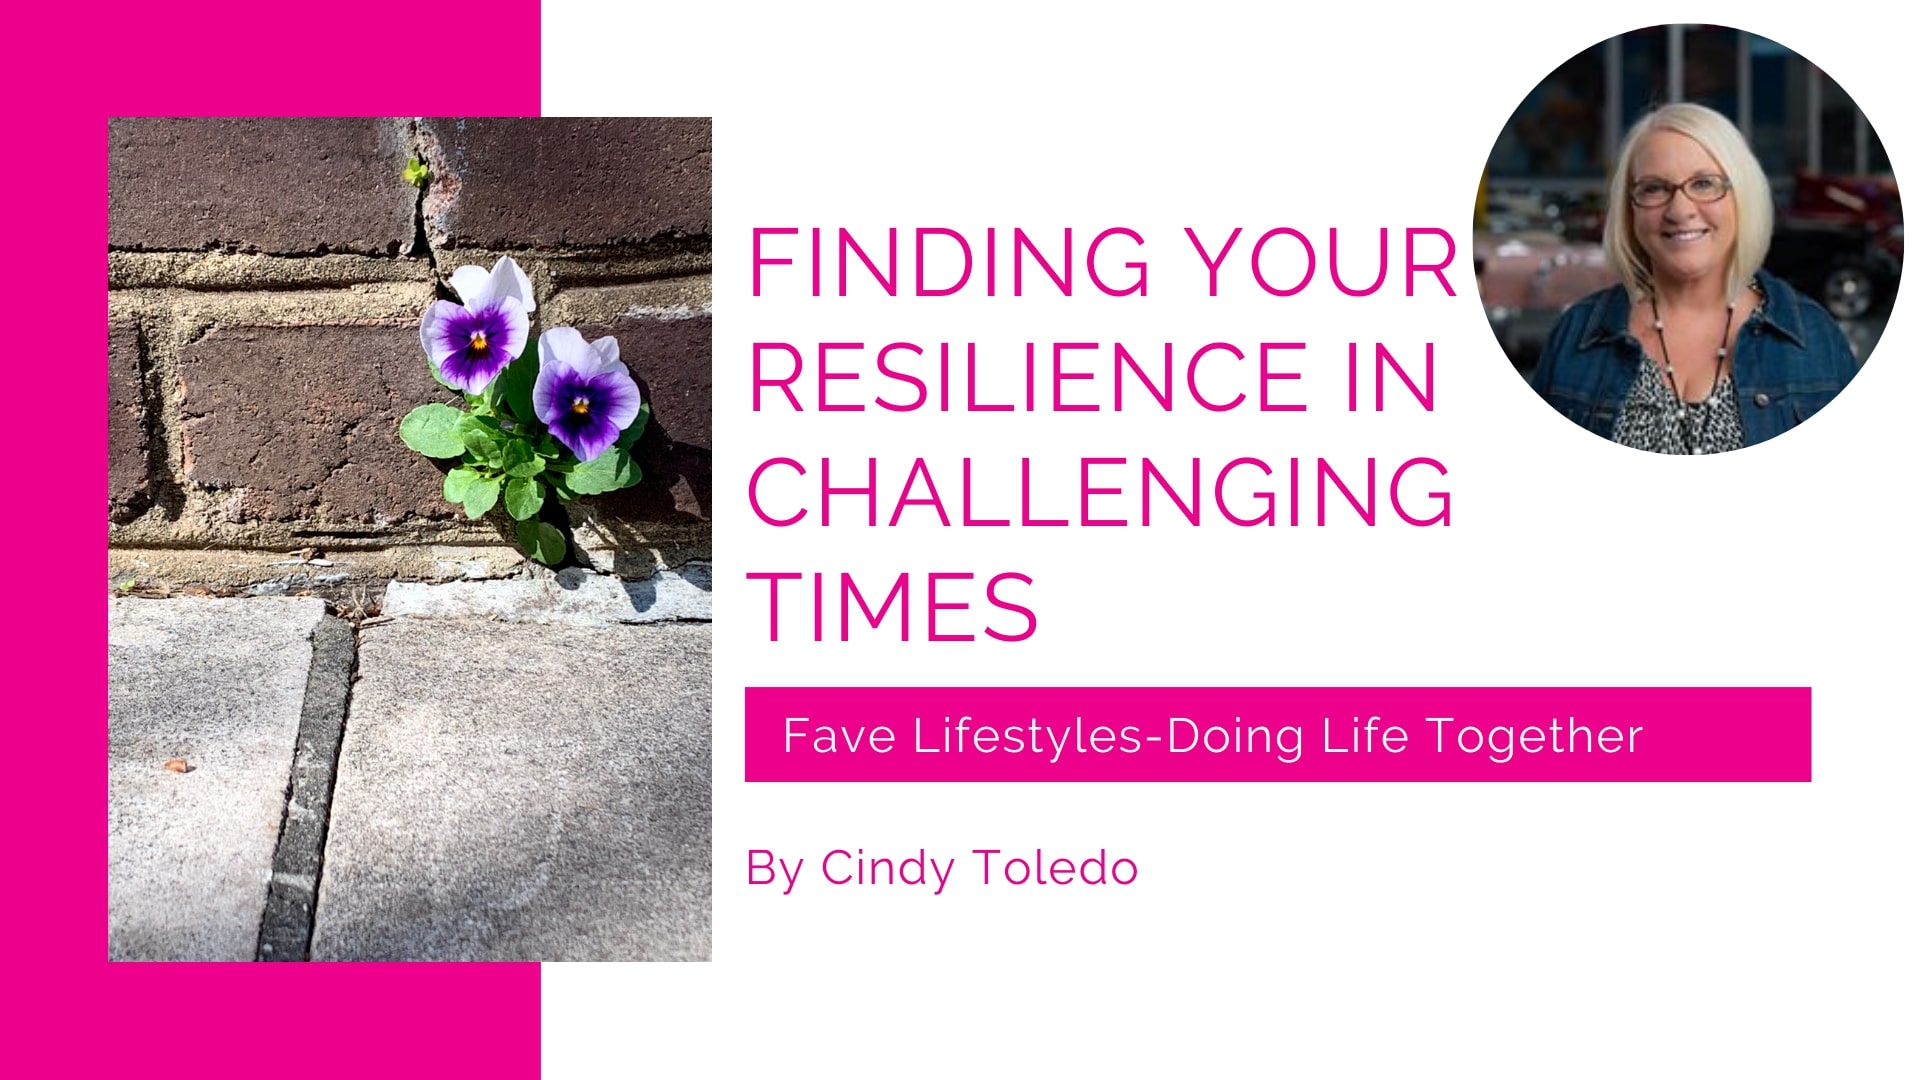 Finding Your Resilience in Challenging Times